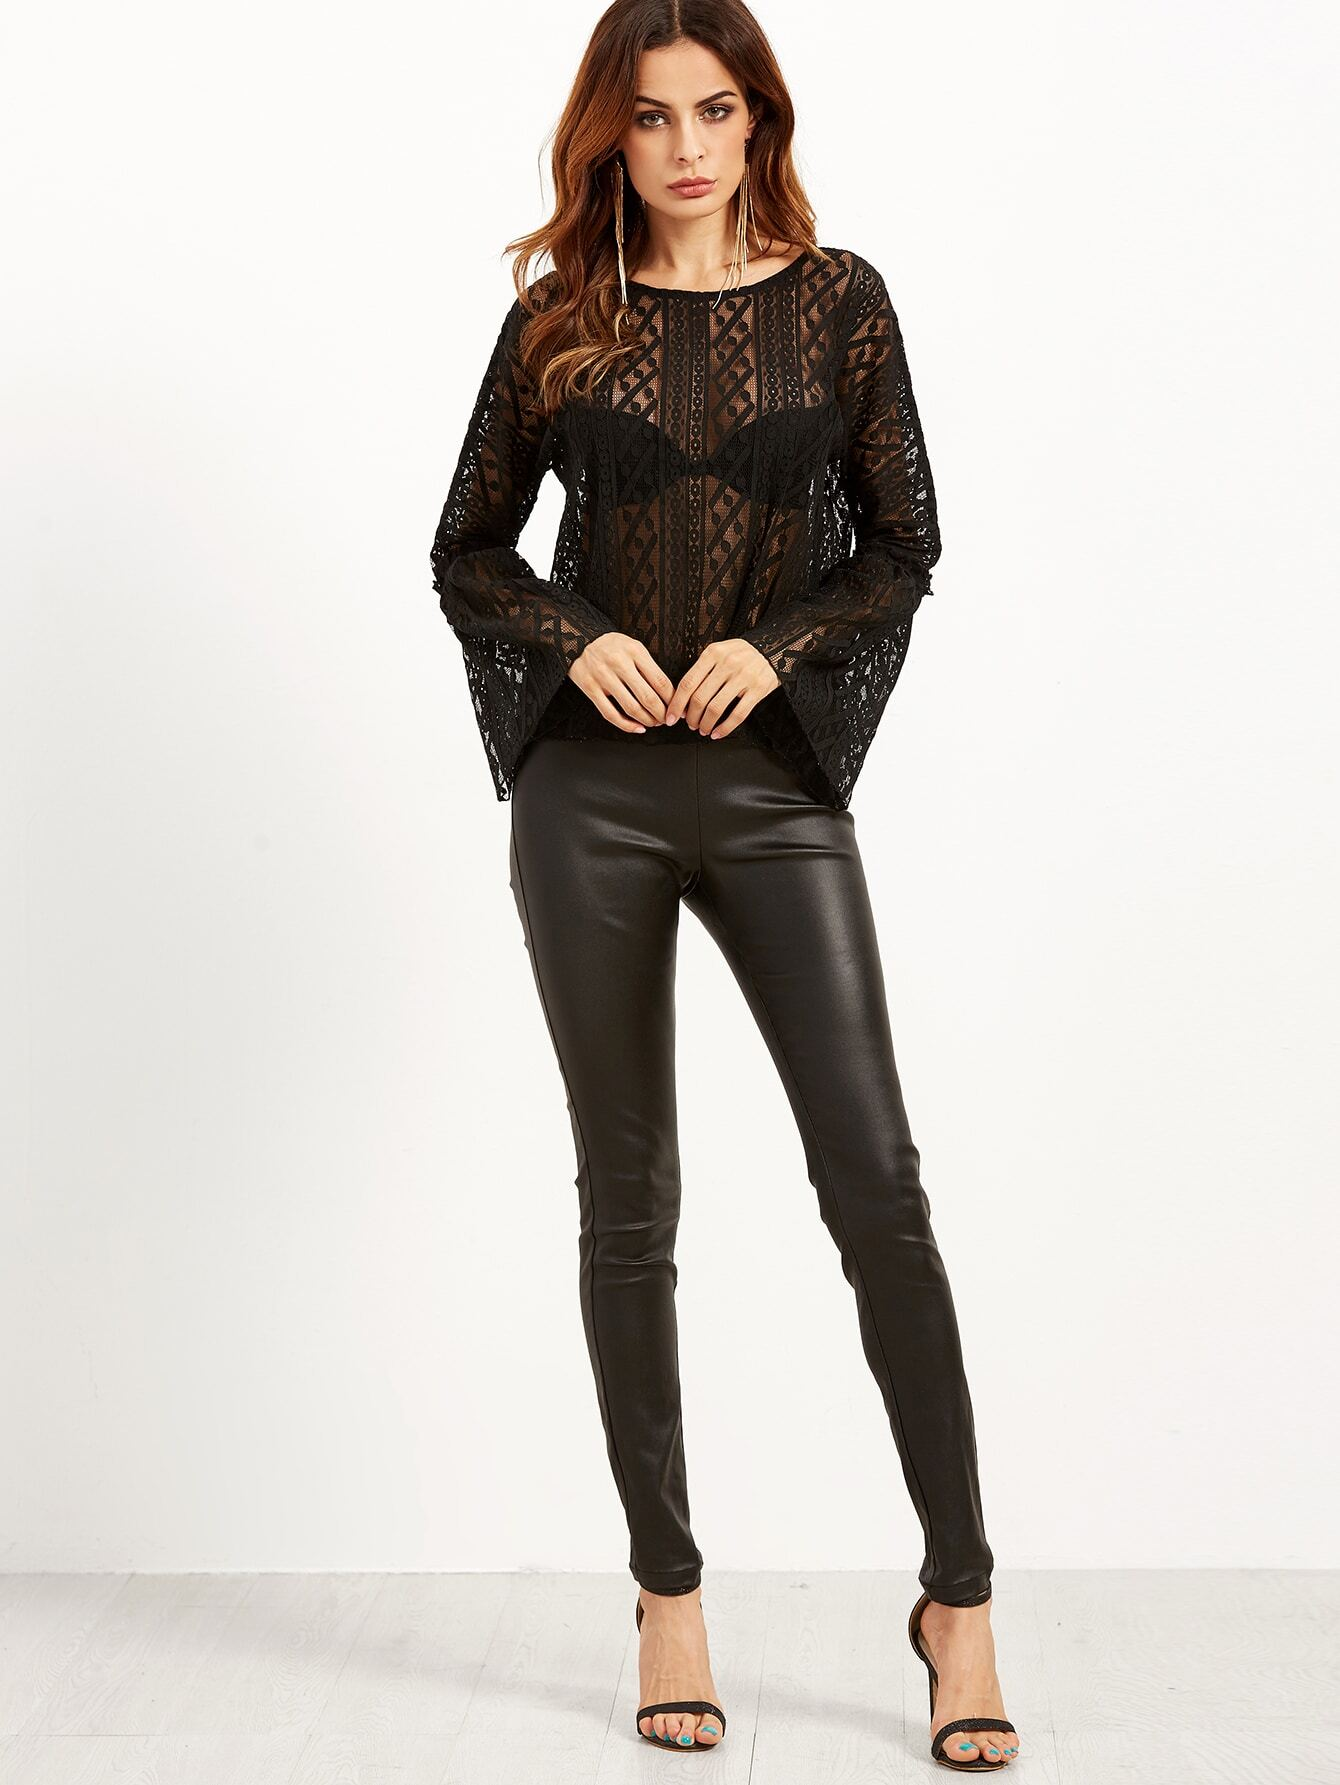 Black Sheer Lace Bell Sleeve Top blouse160830401